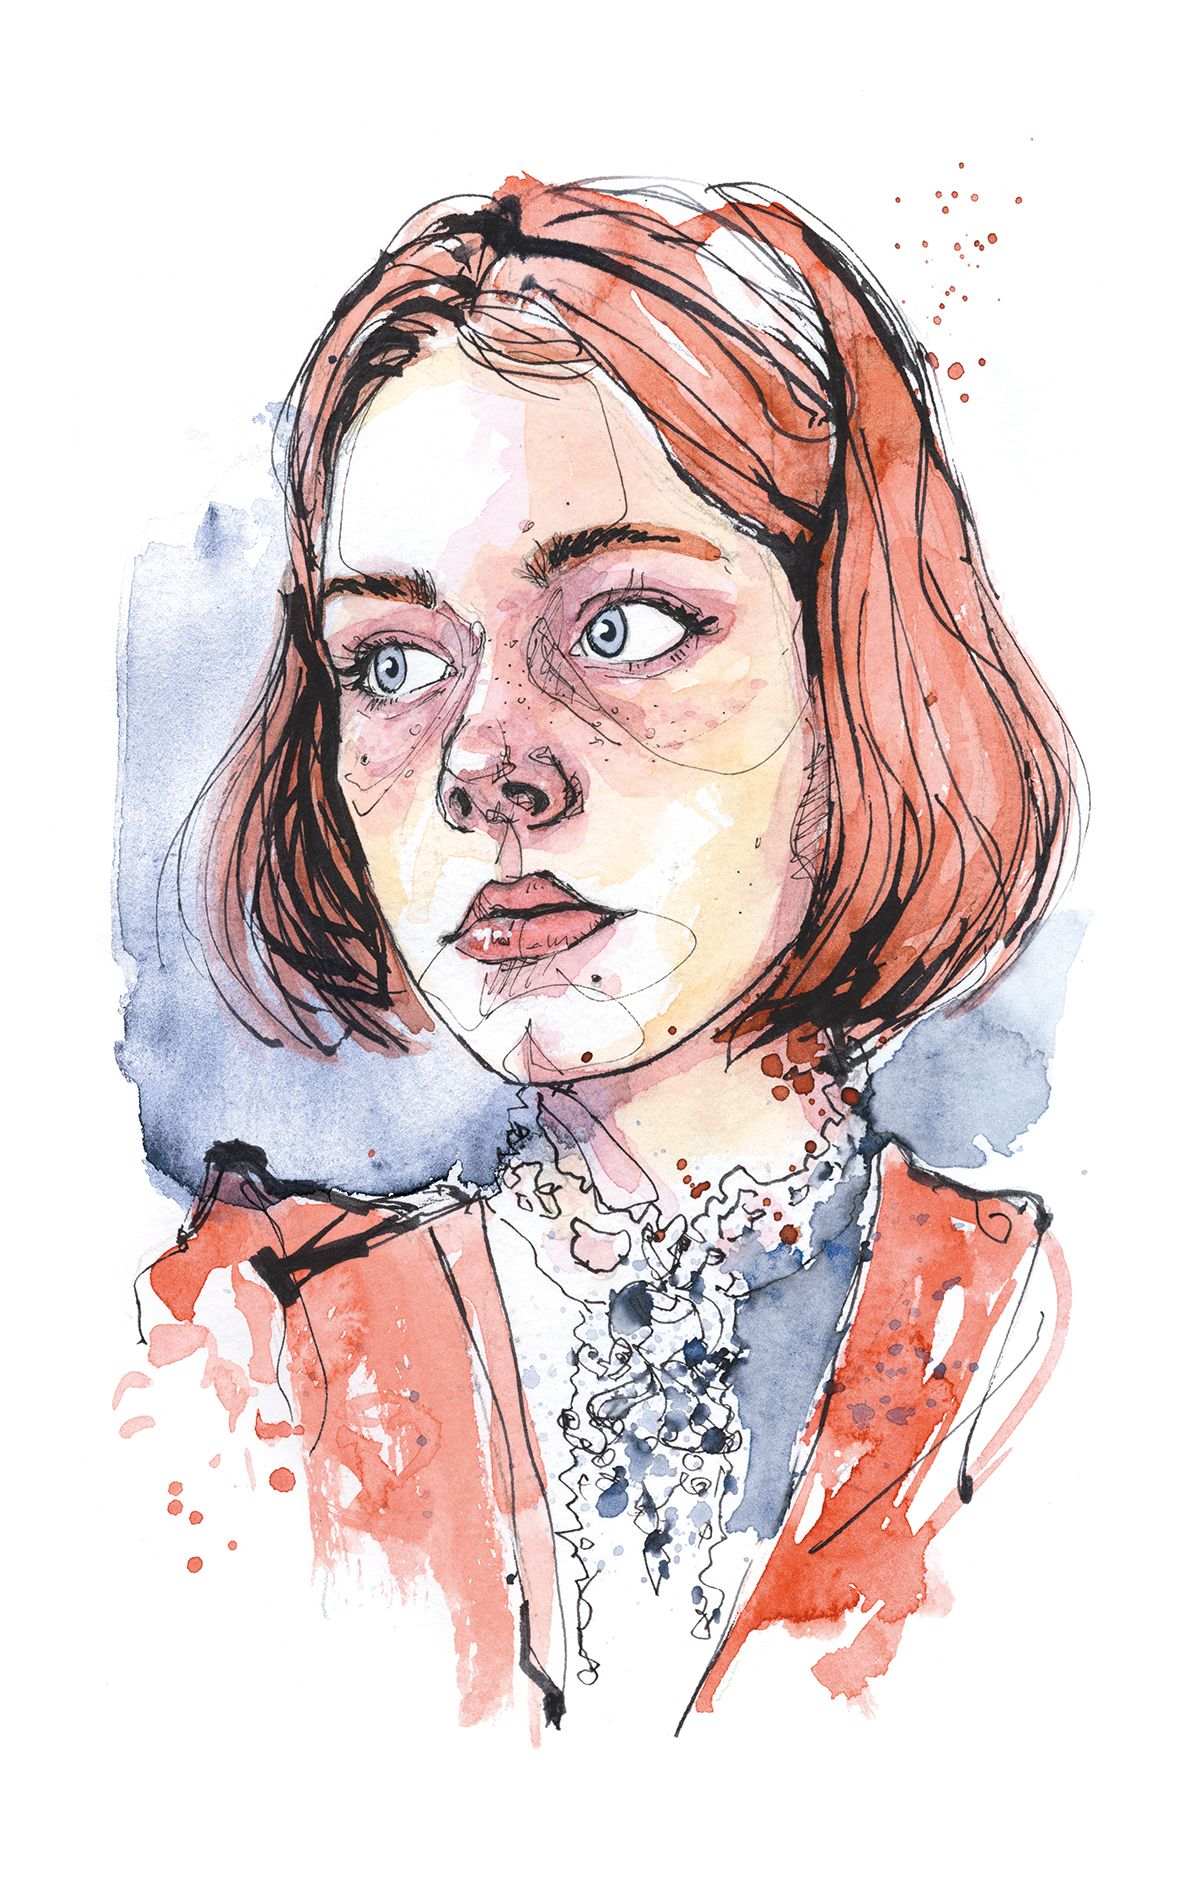 Line Drawing With Watercolor : Dominic beyeler portrait portraitsketch sketch